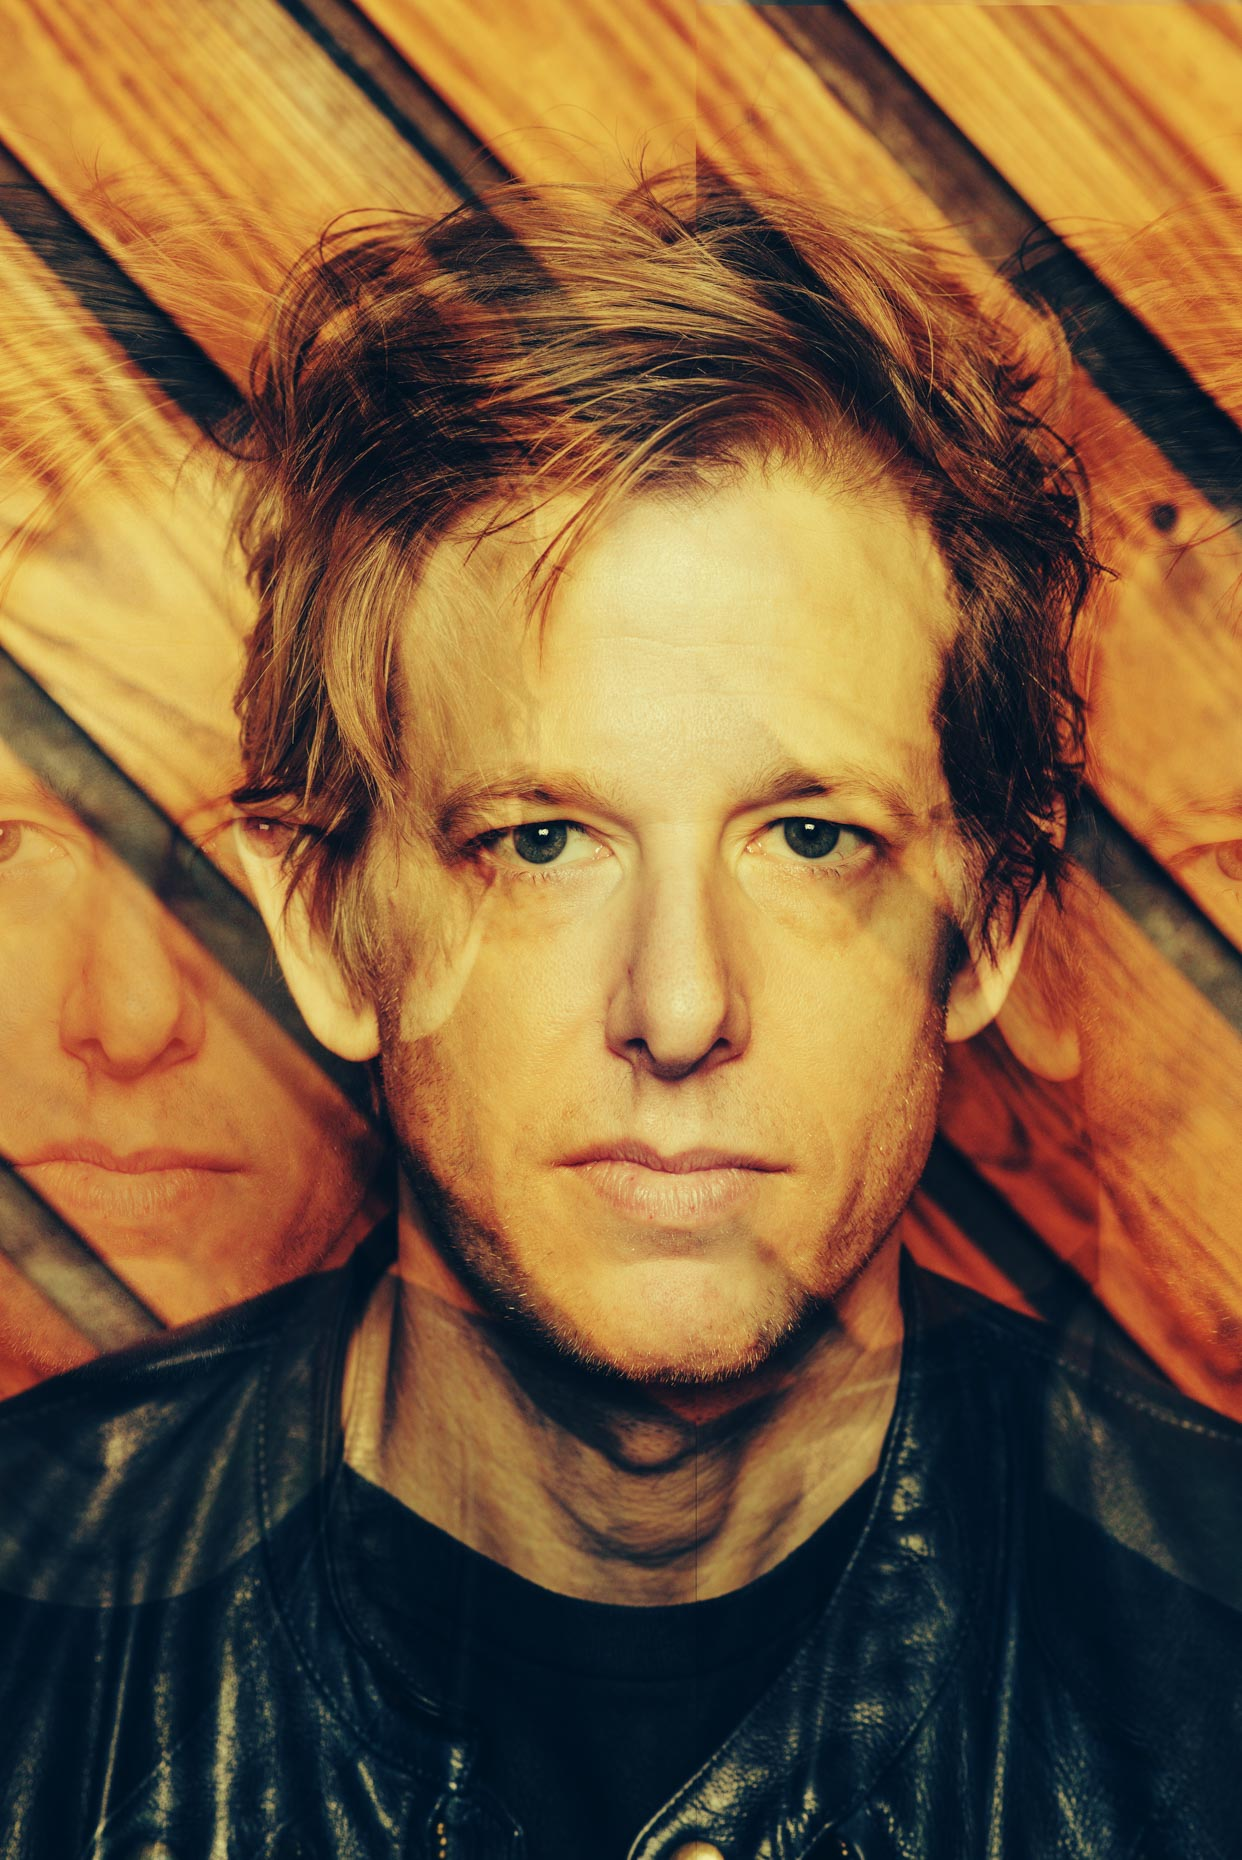 Brit Daniel | Spoon